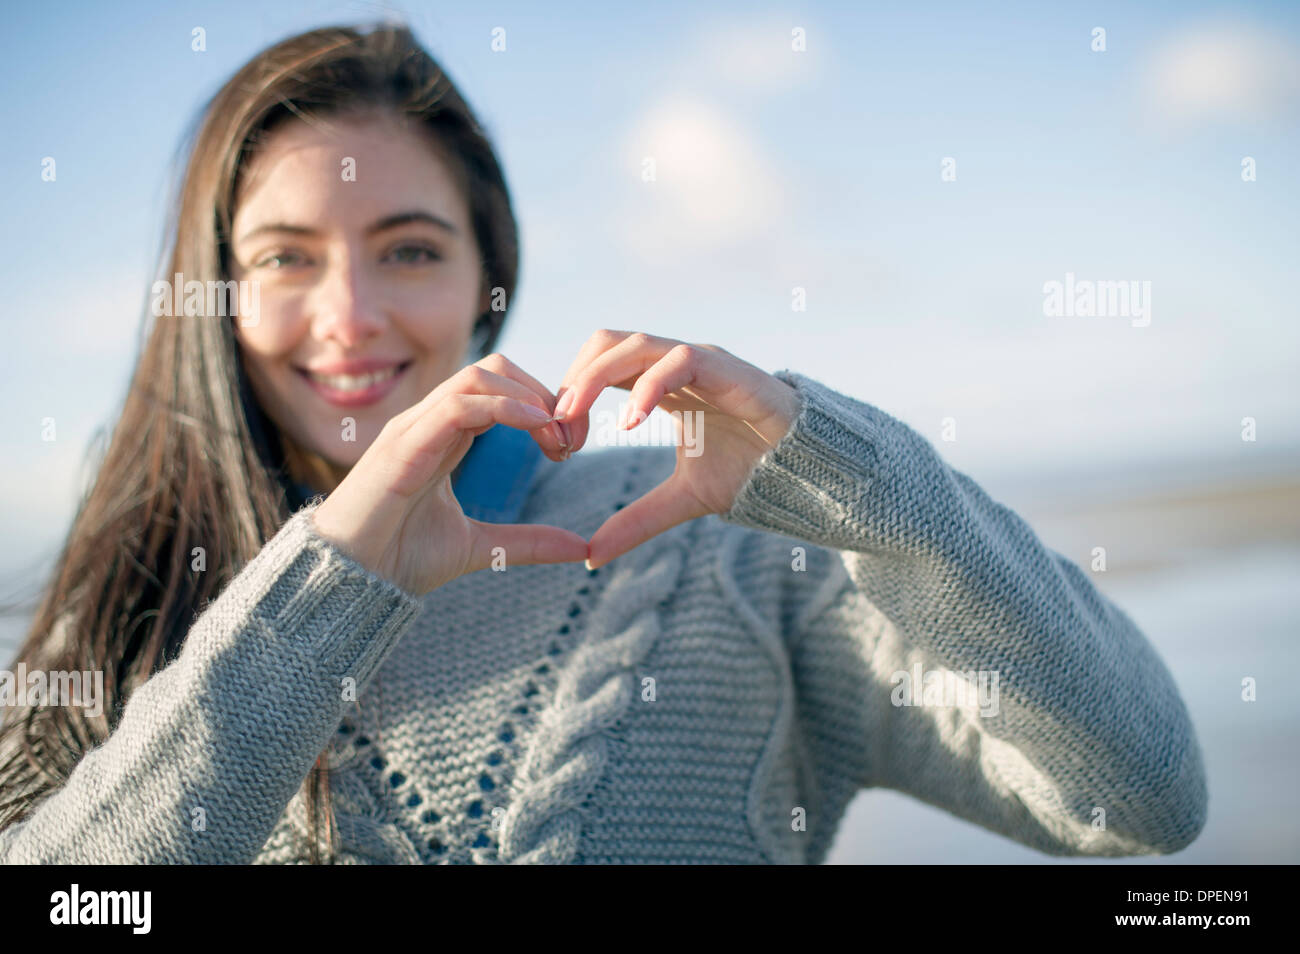 Young woman making heart shape with hands - Stock Image